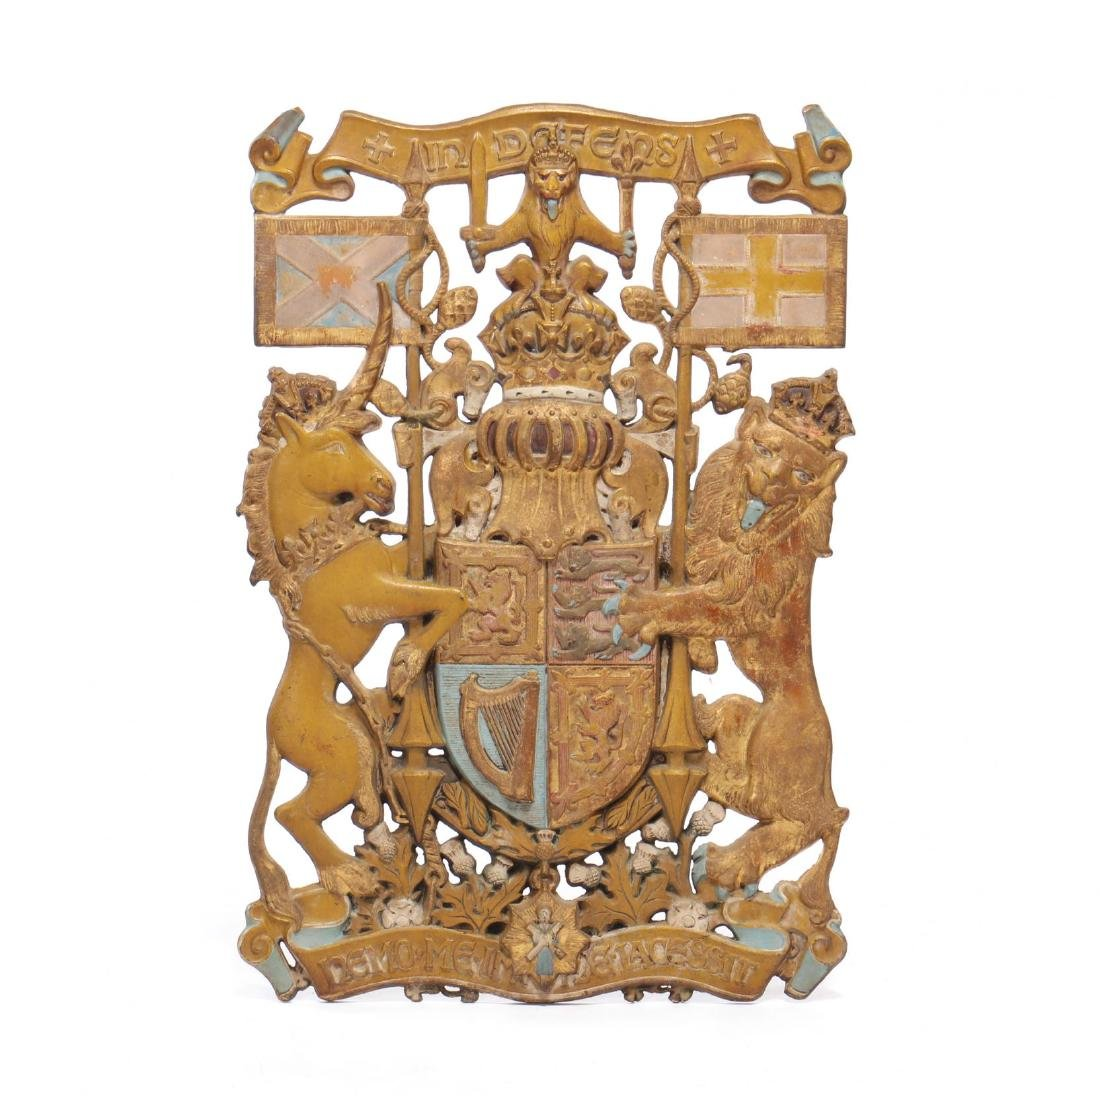 Cast Iron British Royal Warrant With Monarch's